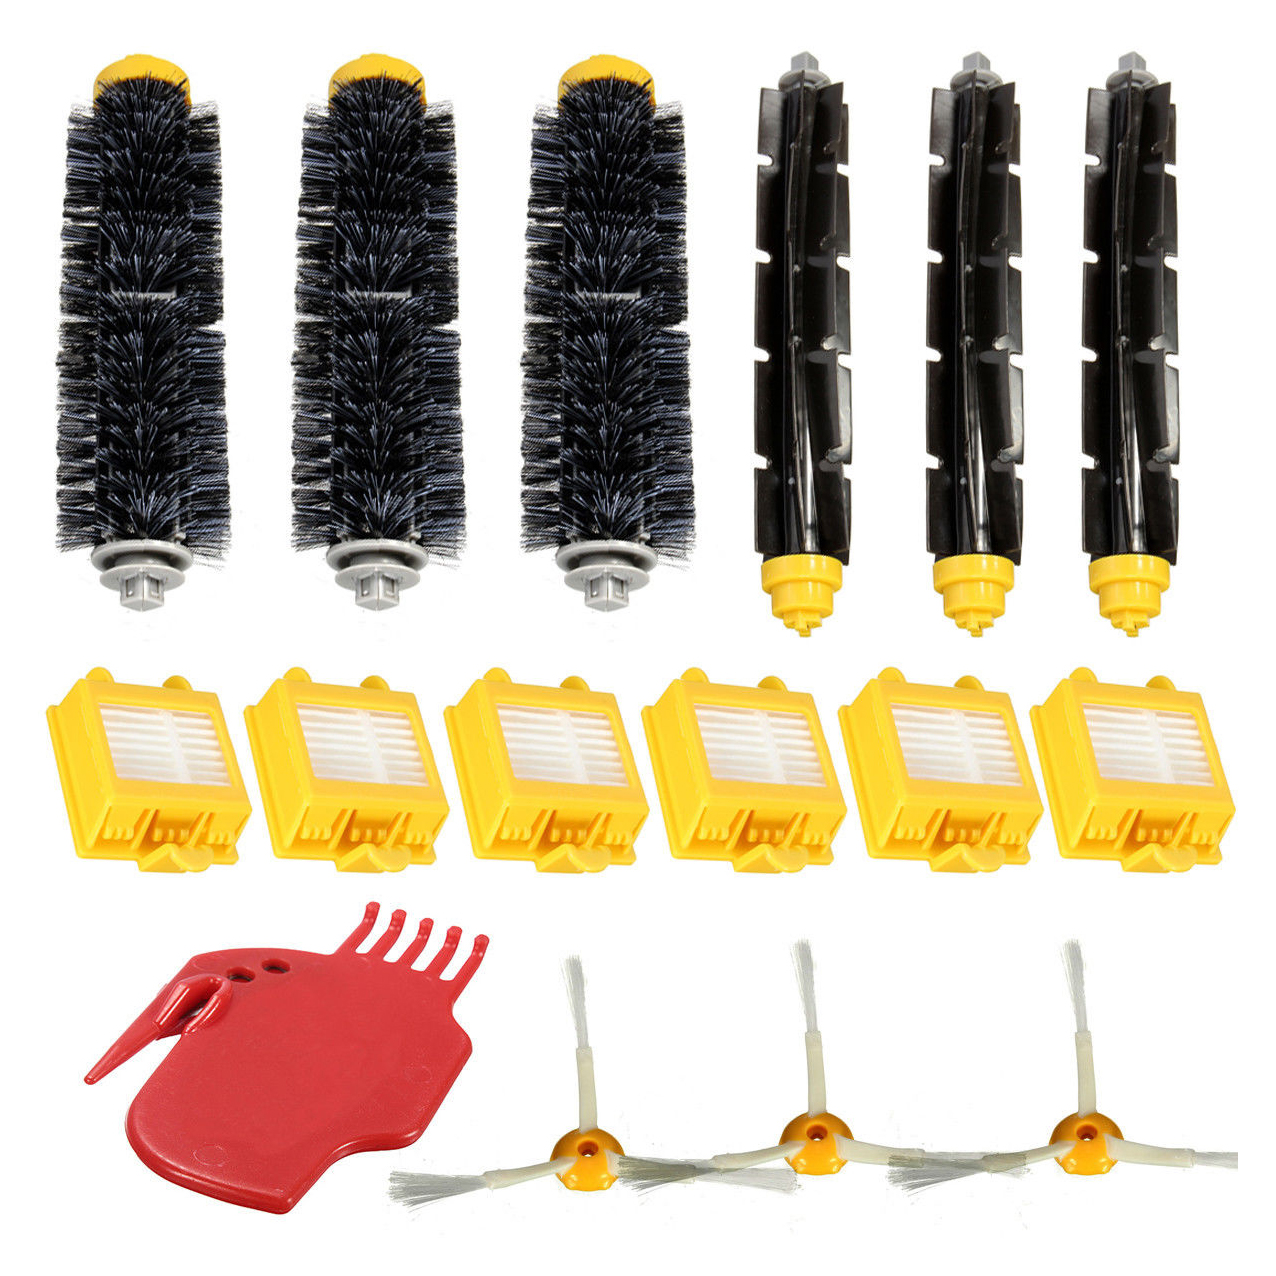 New Brand Filters Pack 3 Armed Side Brush Kit For iRobot Roomba Vacuum 700 760 770 780-in Vacuum Cleaner Parts from Home Appliances